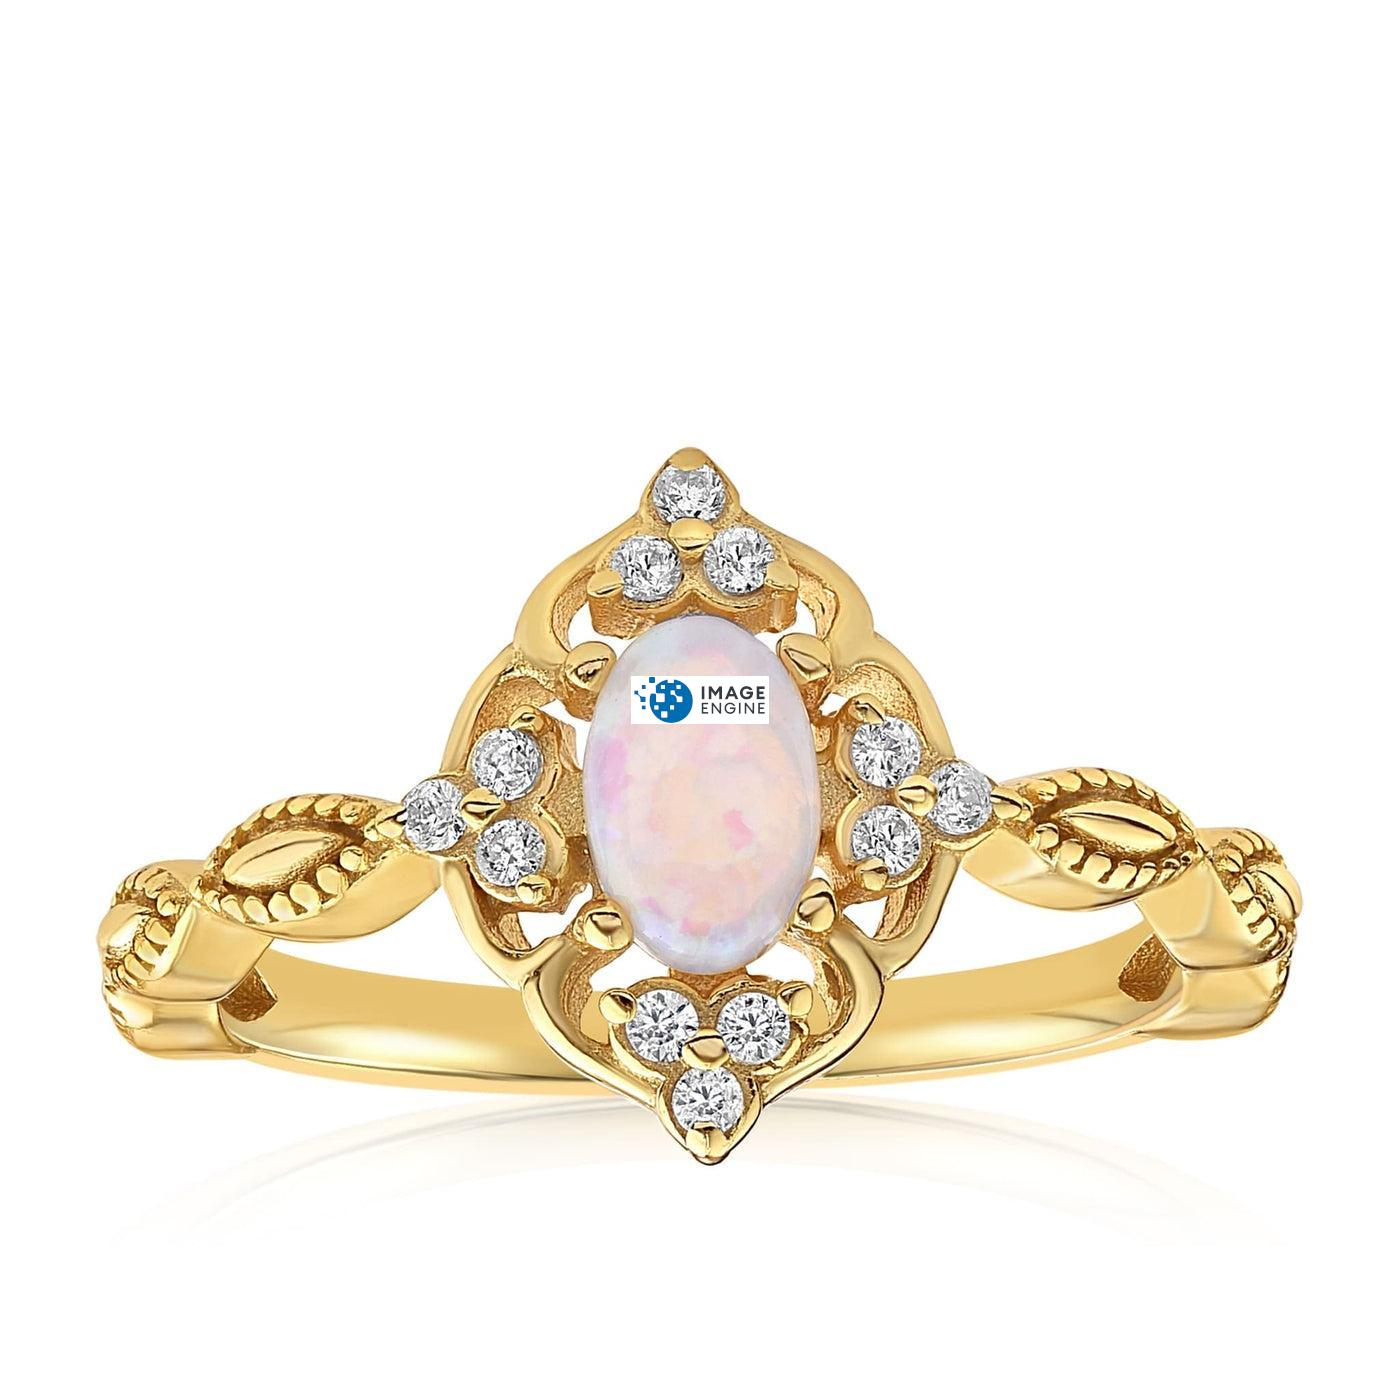 Blue Opal Carved Ring - Front View Facing Up - 18K Yellow Gold Vermeil Featured